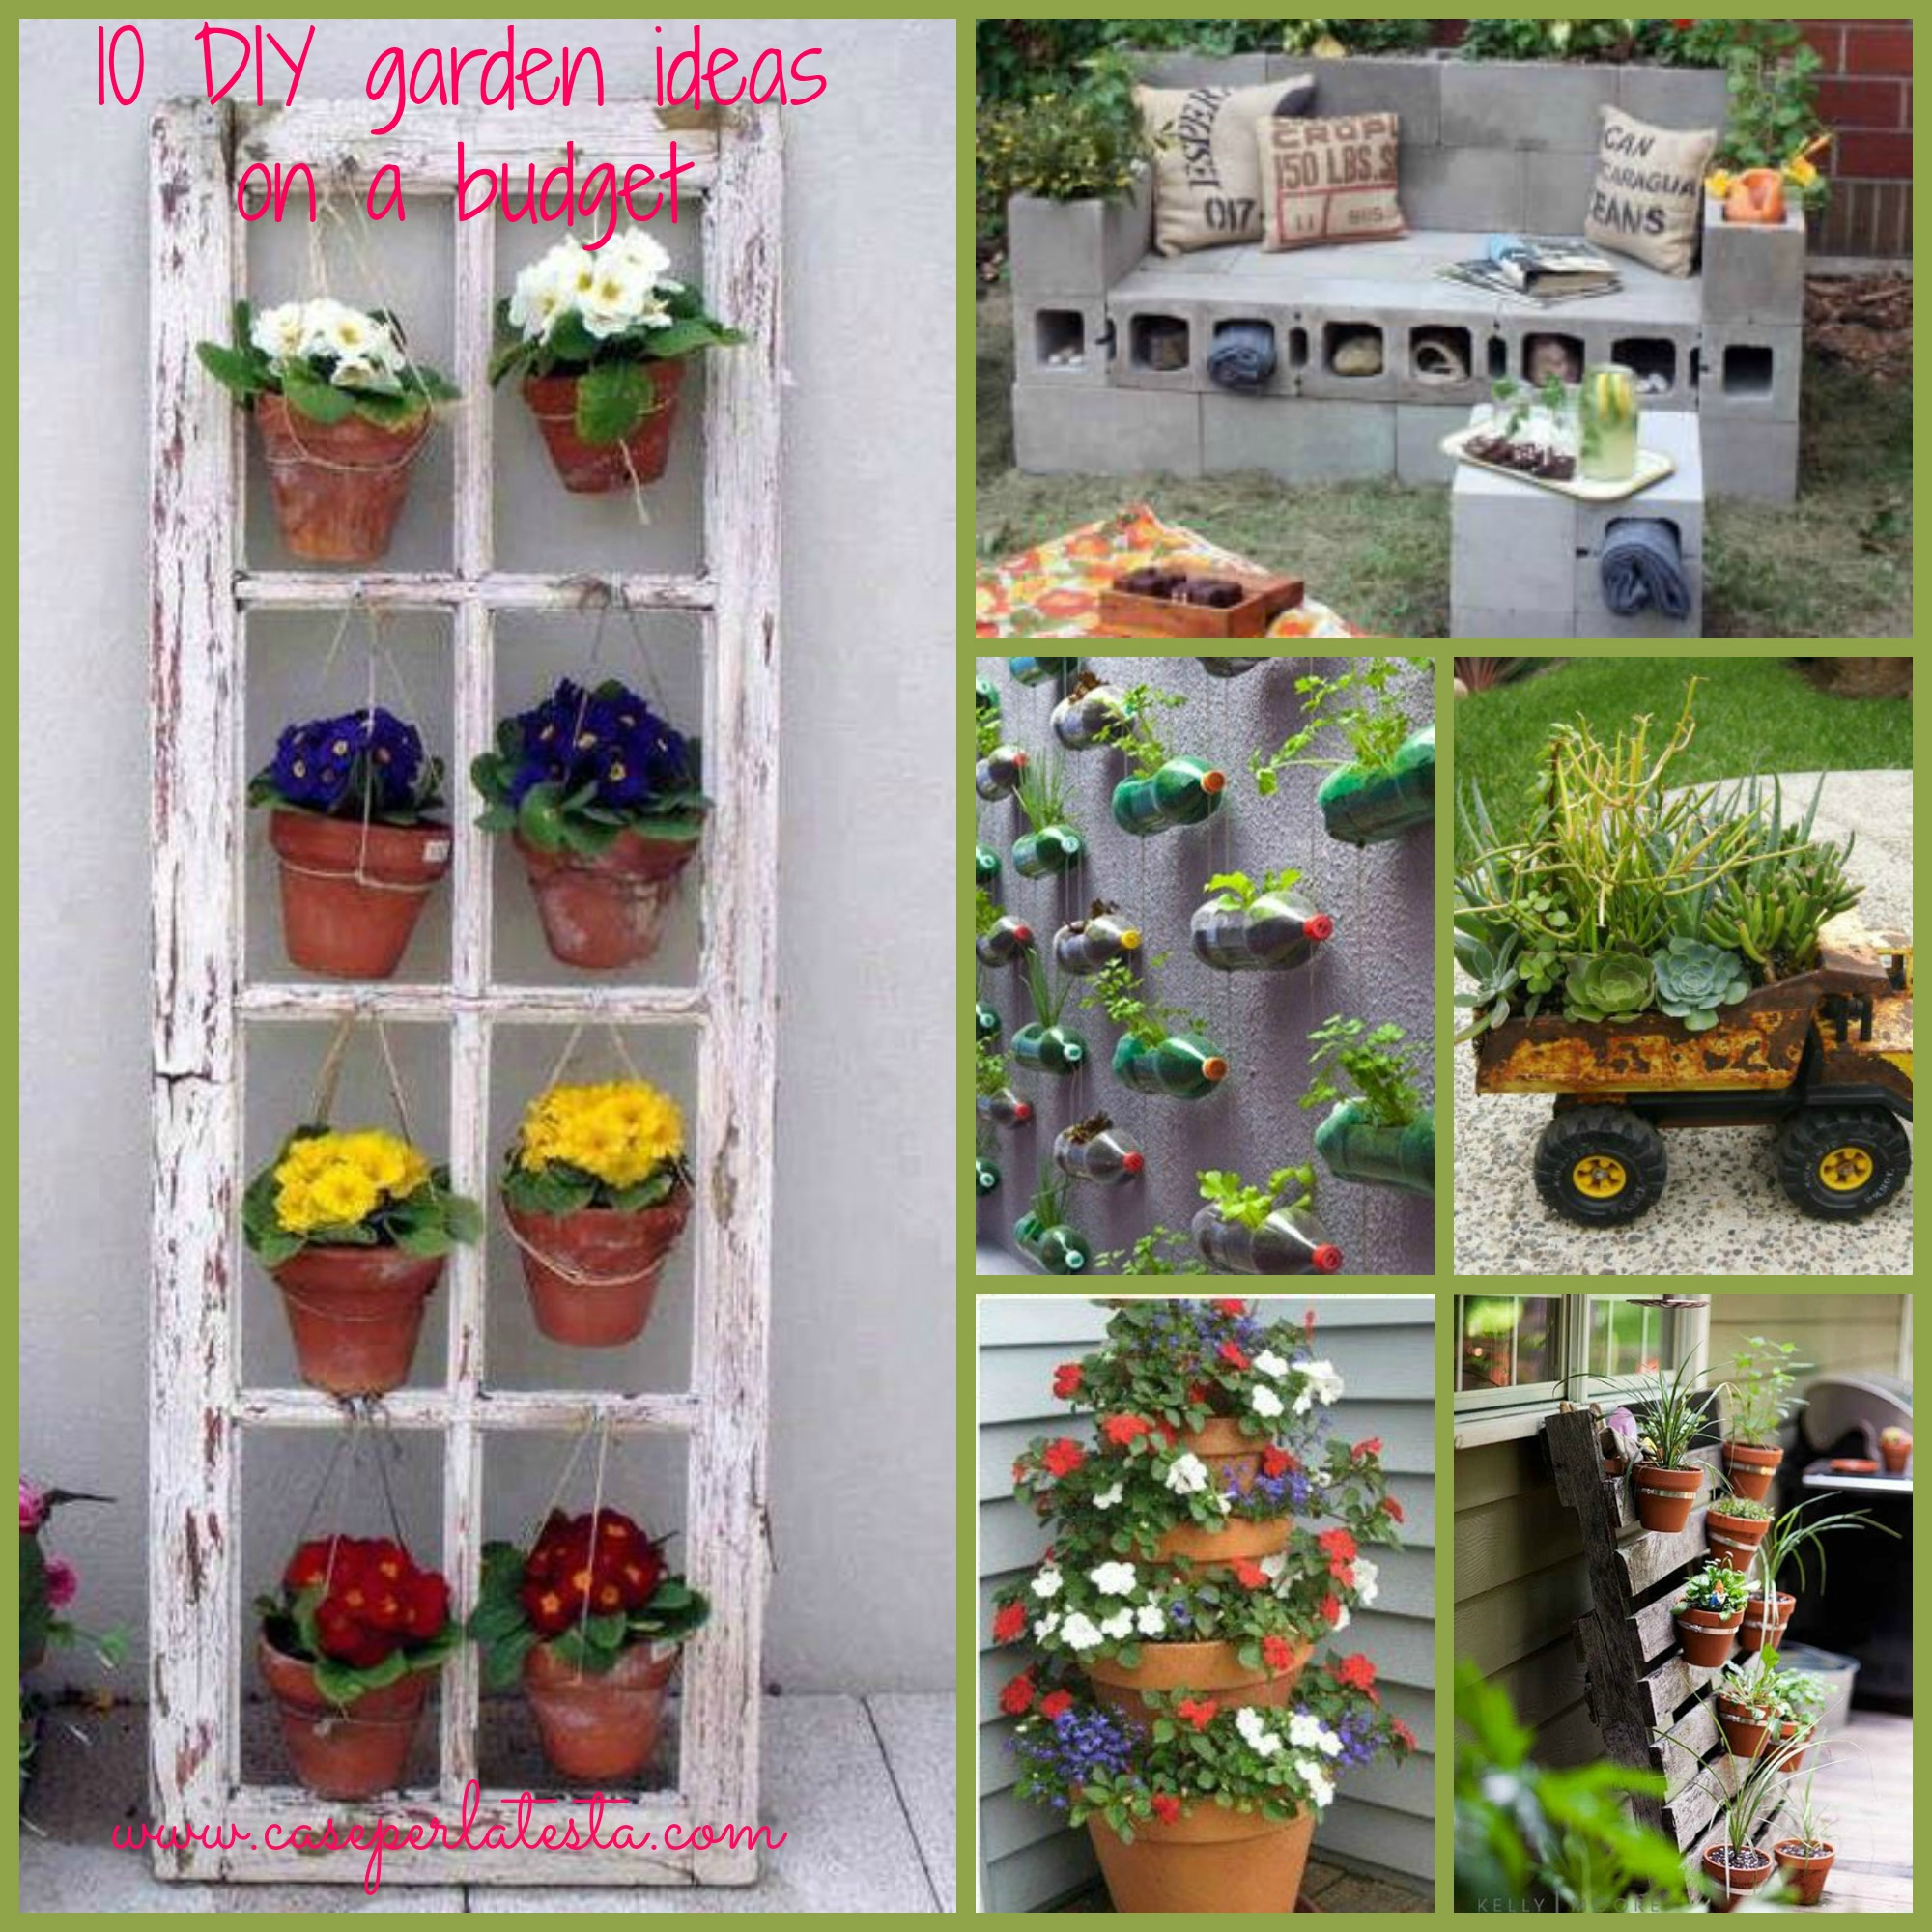 Idee giardino fai da te low cost diy garden ideas on a for Idee da giardino